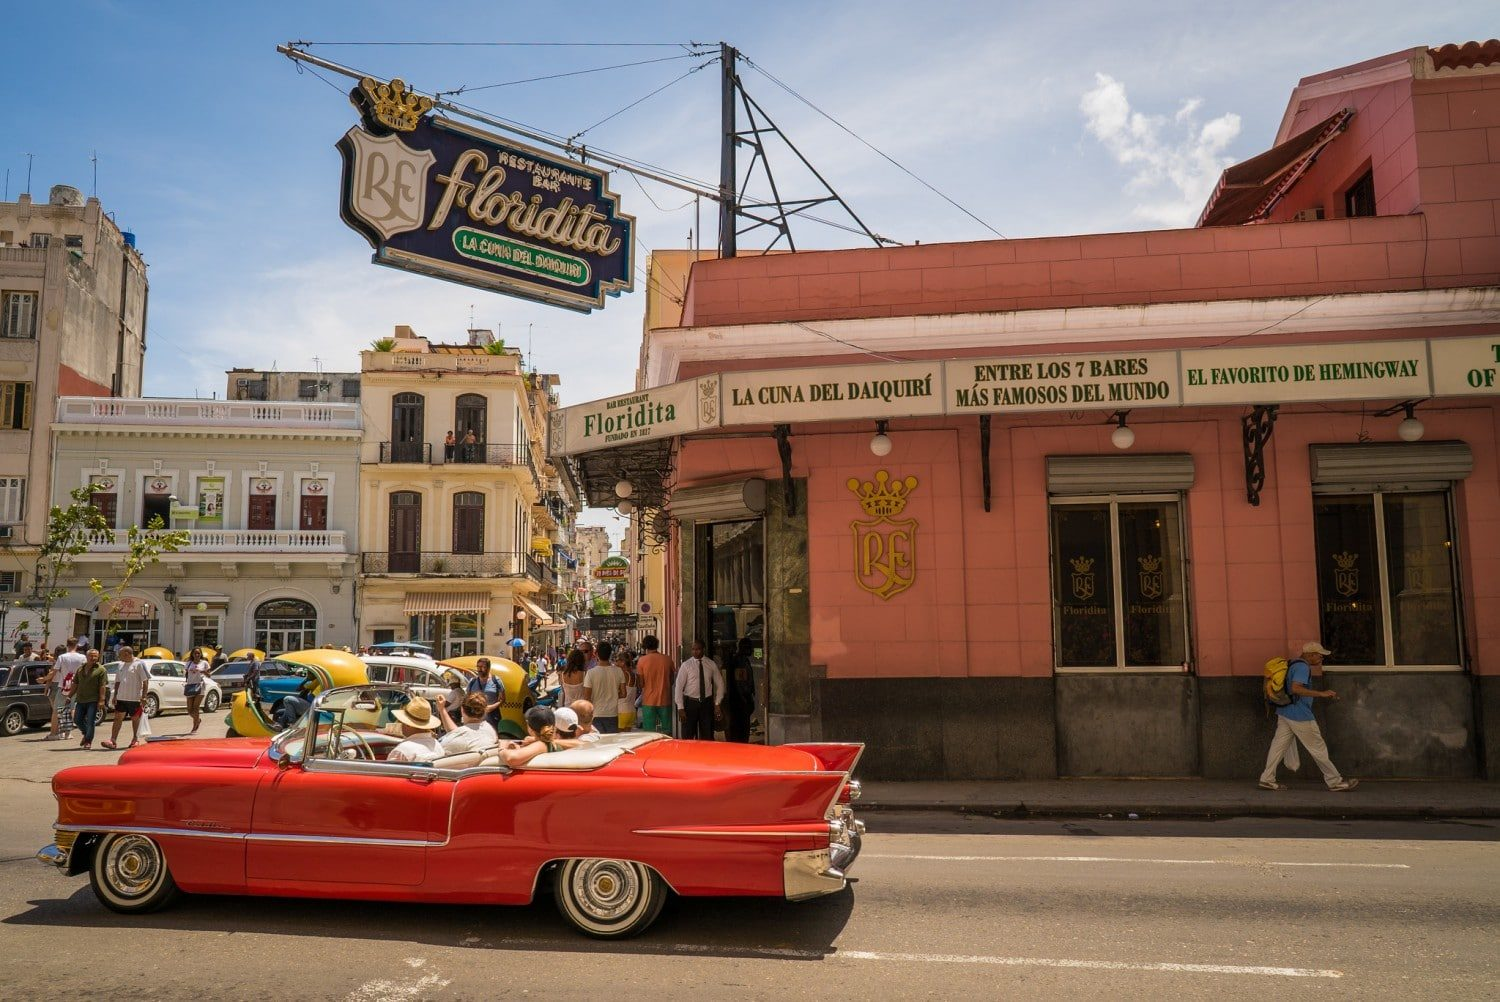 El Floridita Havana is one of the best bars in Havana and one of Hemingway's old favourite haunts